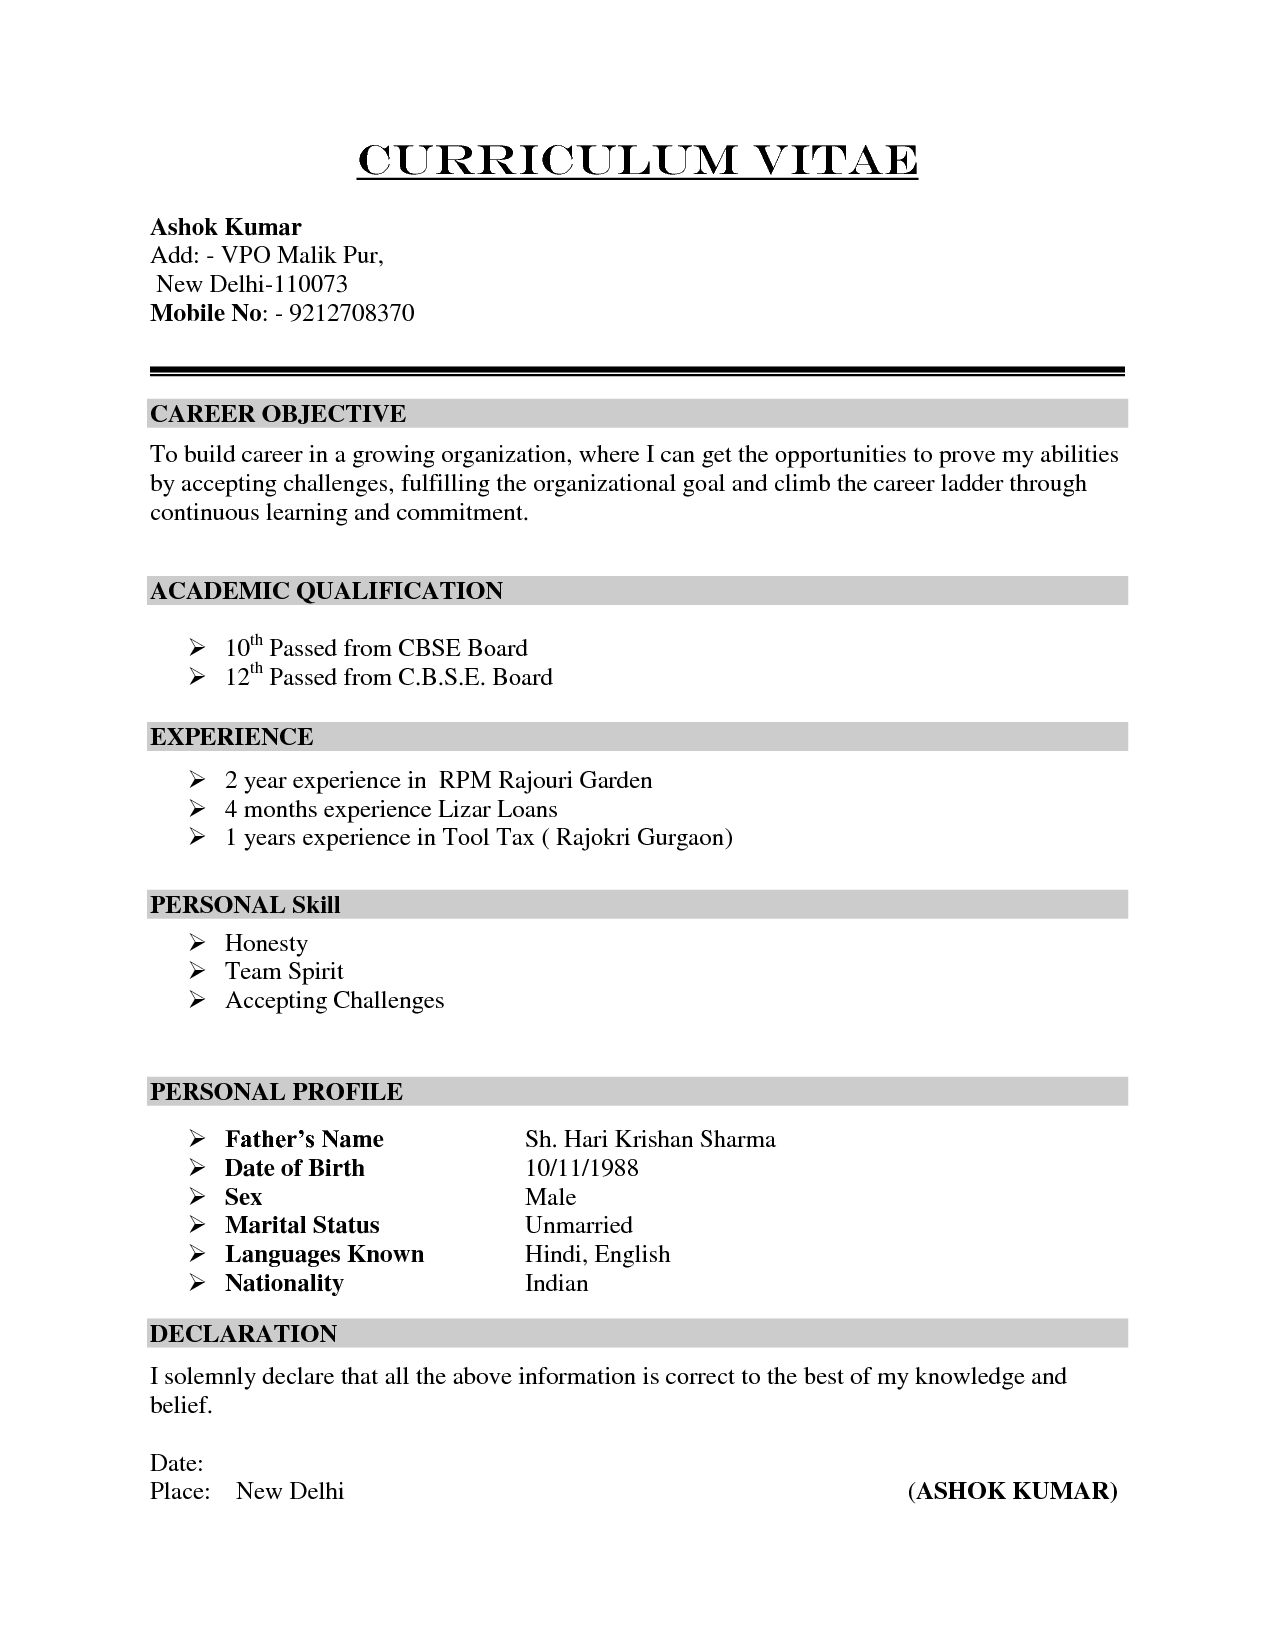 sample cv form exons tk category curriculum vitae